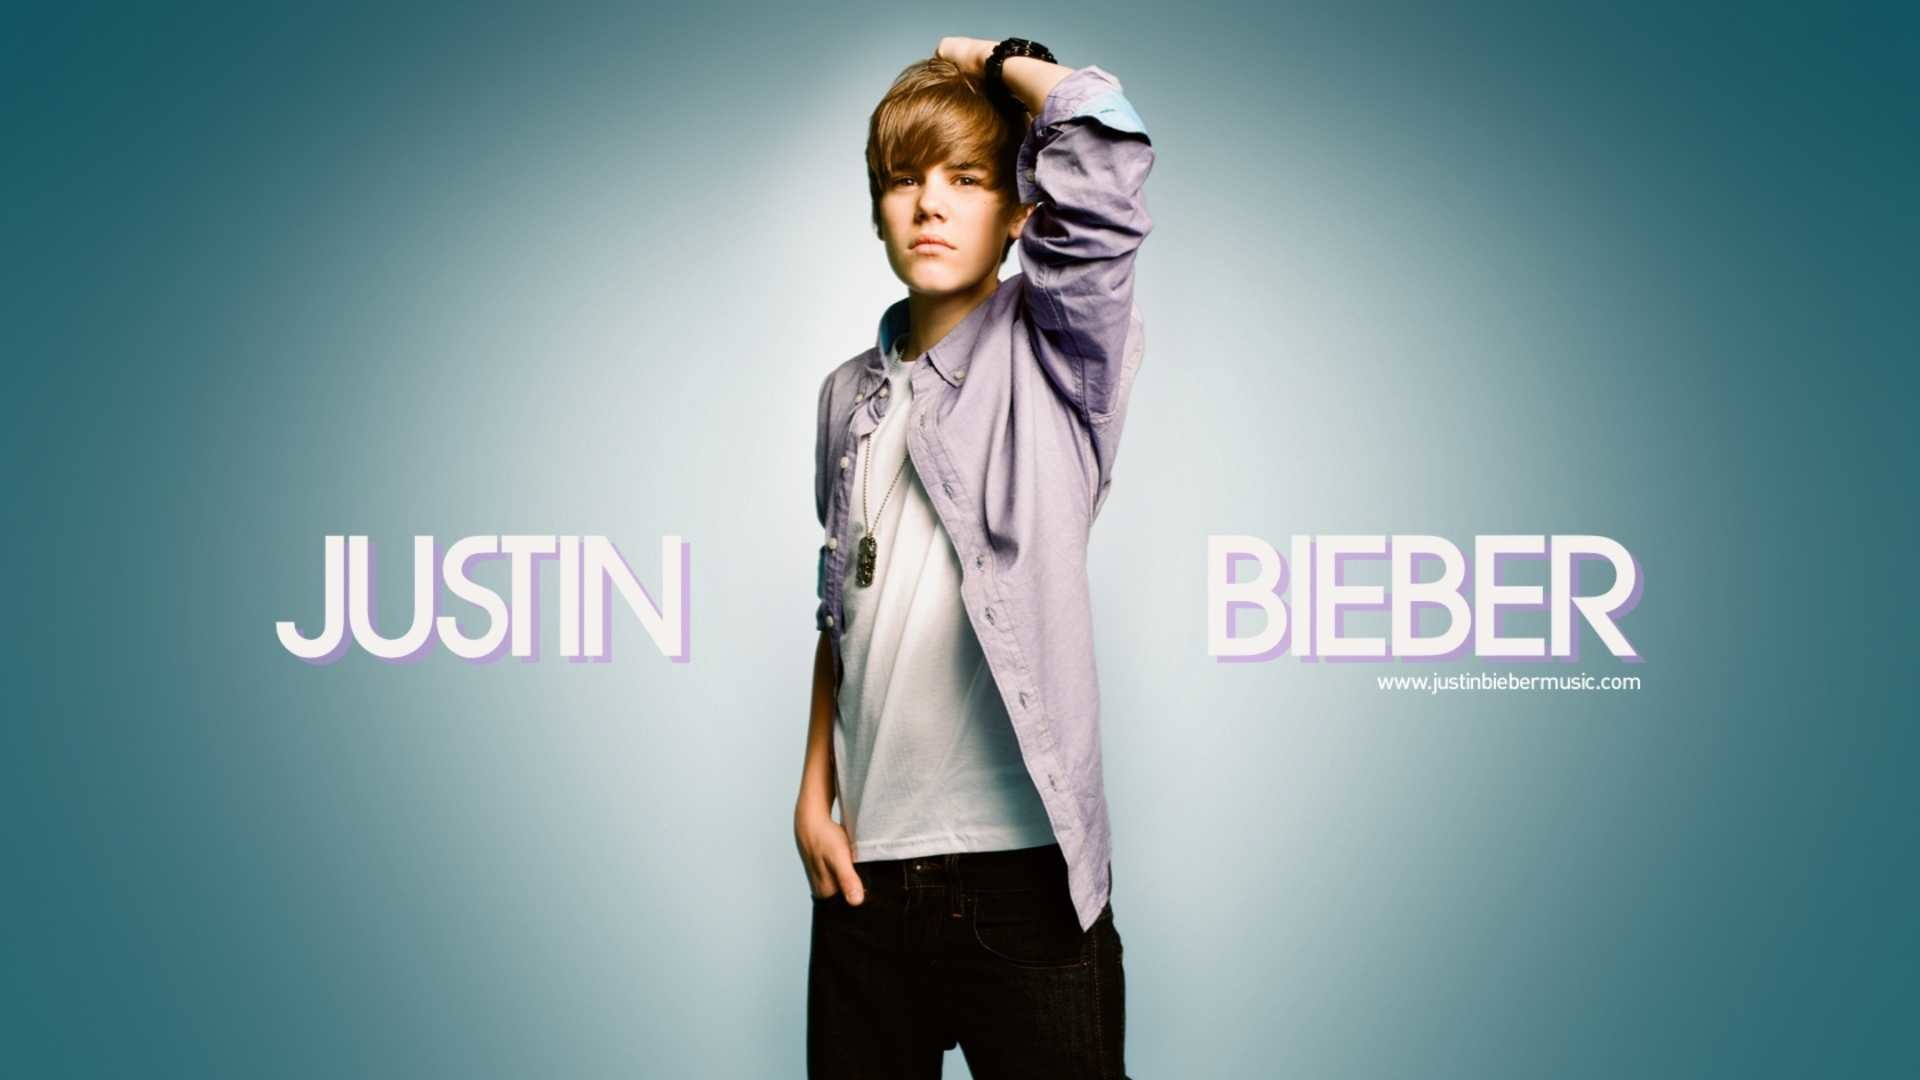 1920x1080 Download Justin Bieber Wallpaper Hd For Iphone